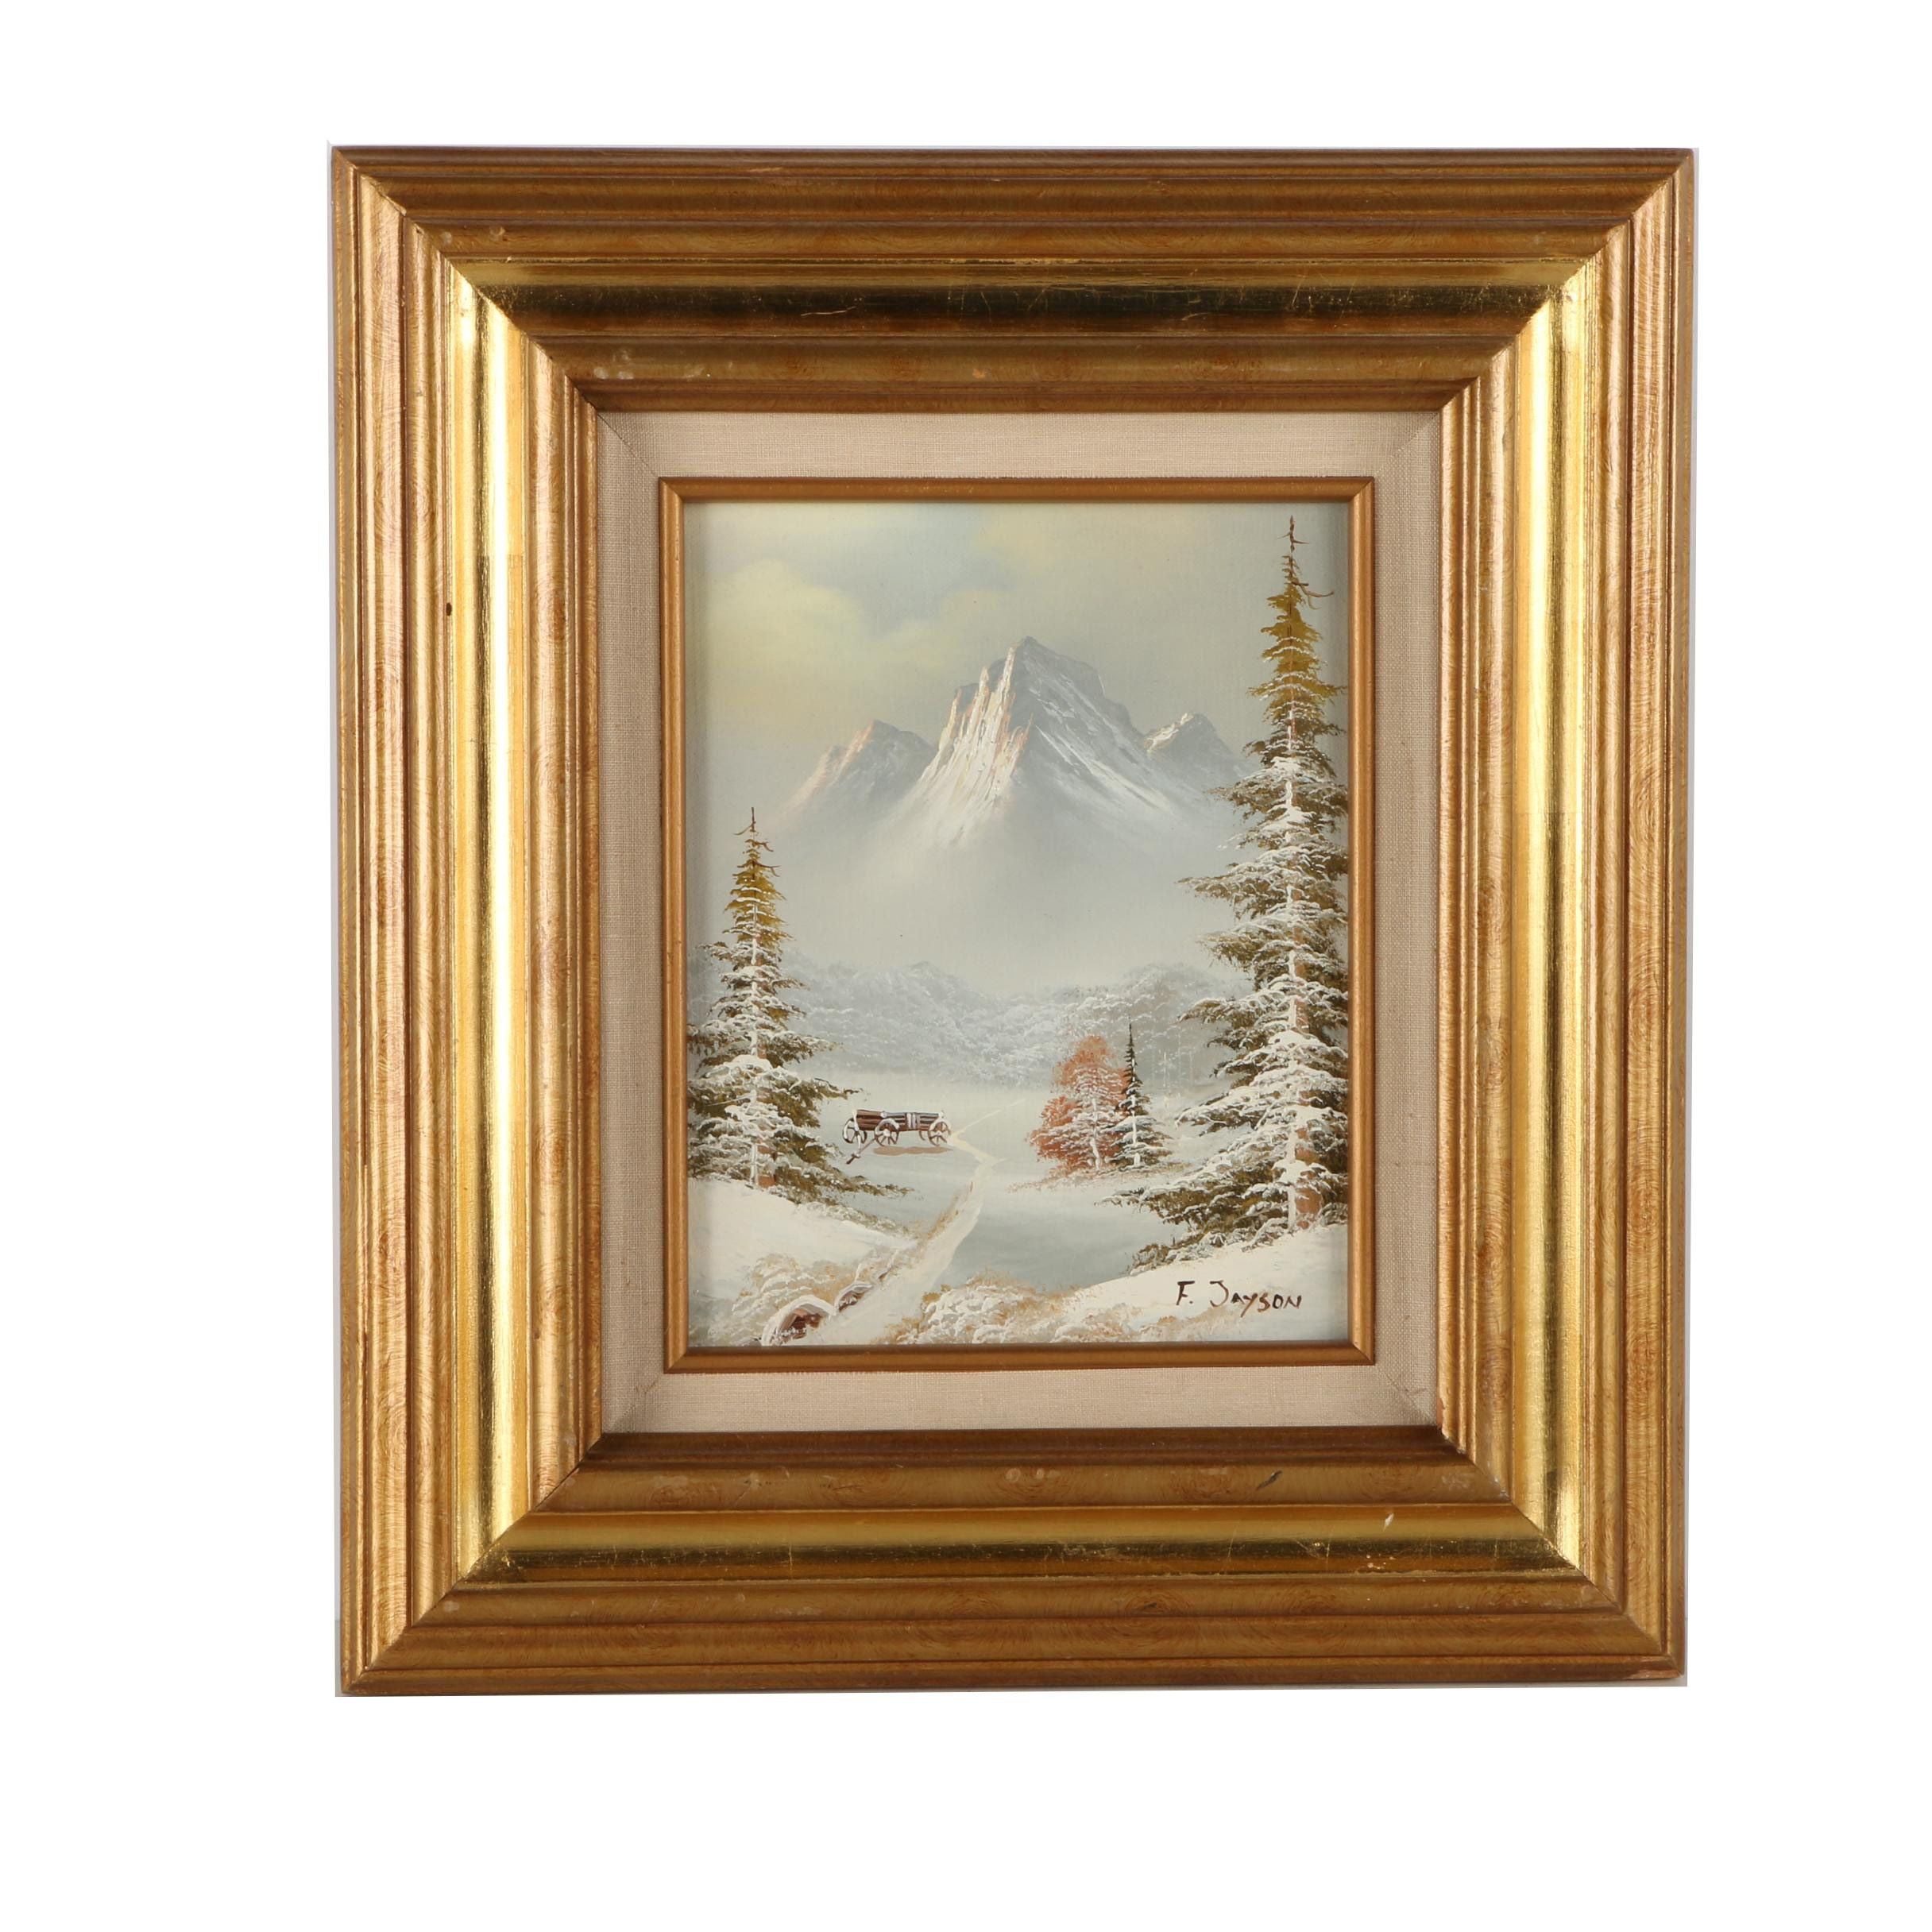 F. Jayson Oil Painting on Canvas of Winter Scene